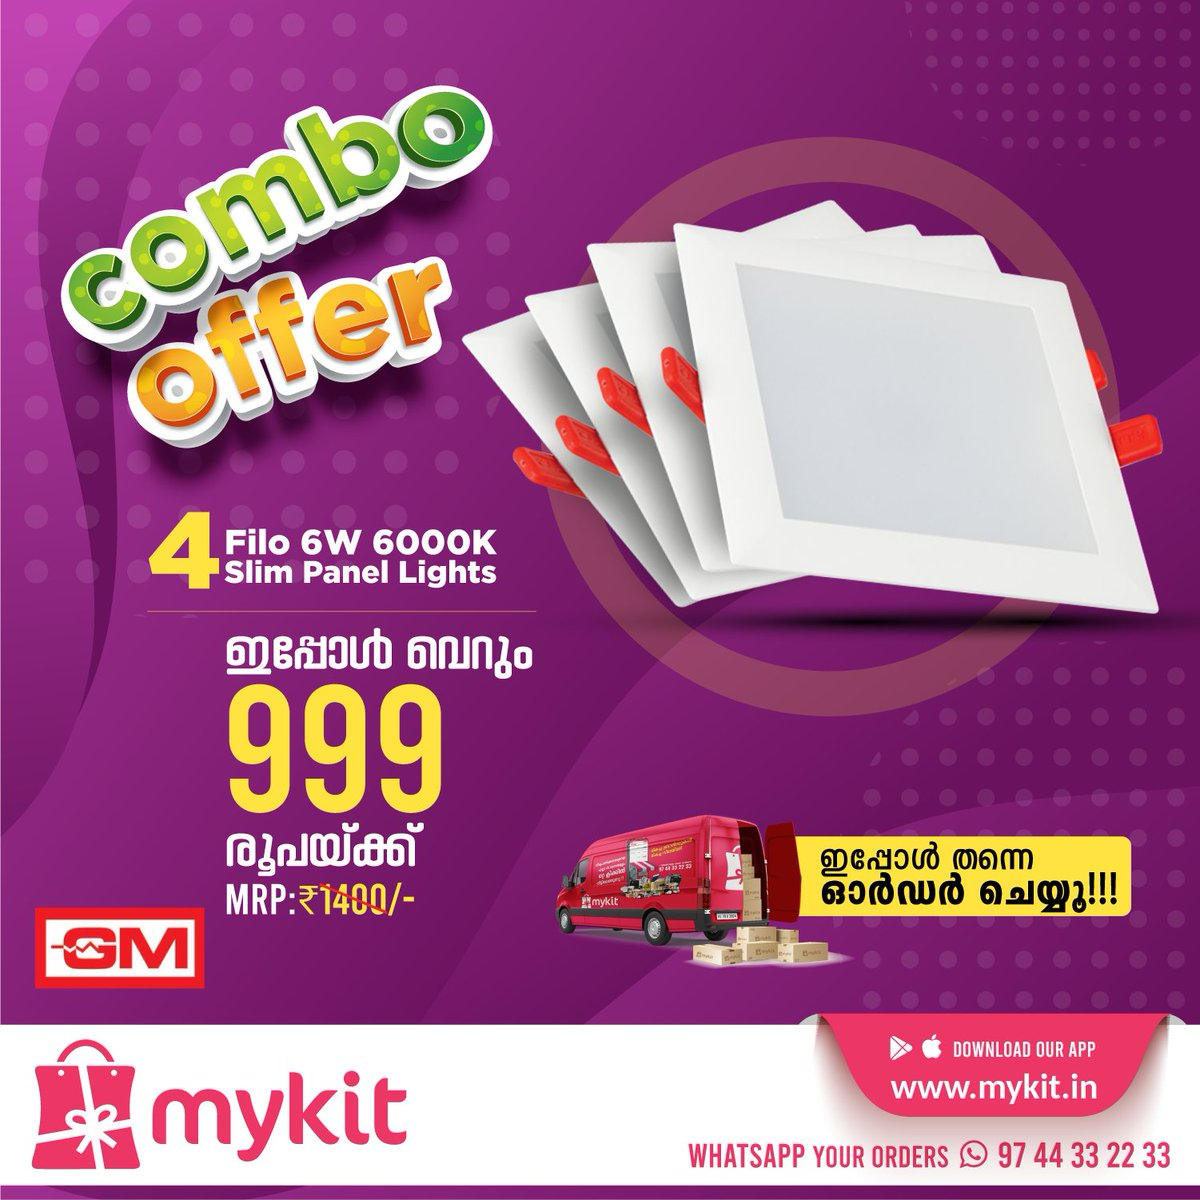 Don't miss the combo offer...  Buy now: https://t.co/N3mp68XgN7  Visit now: https://t.co/7ZkoHPi5Hy  #mykitcart #mykit #onlineshopping #brandyourhome #kannurecommerce #kannur #kerala https://t.co/tNgGYHmUW1